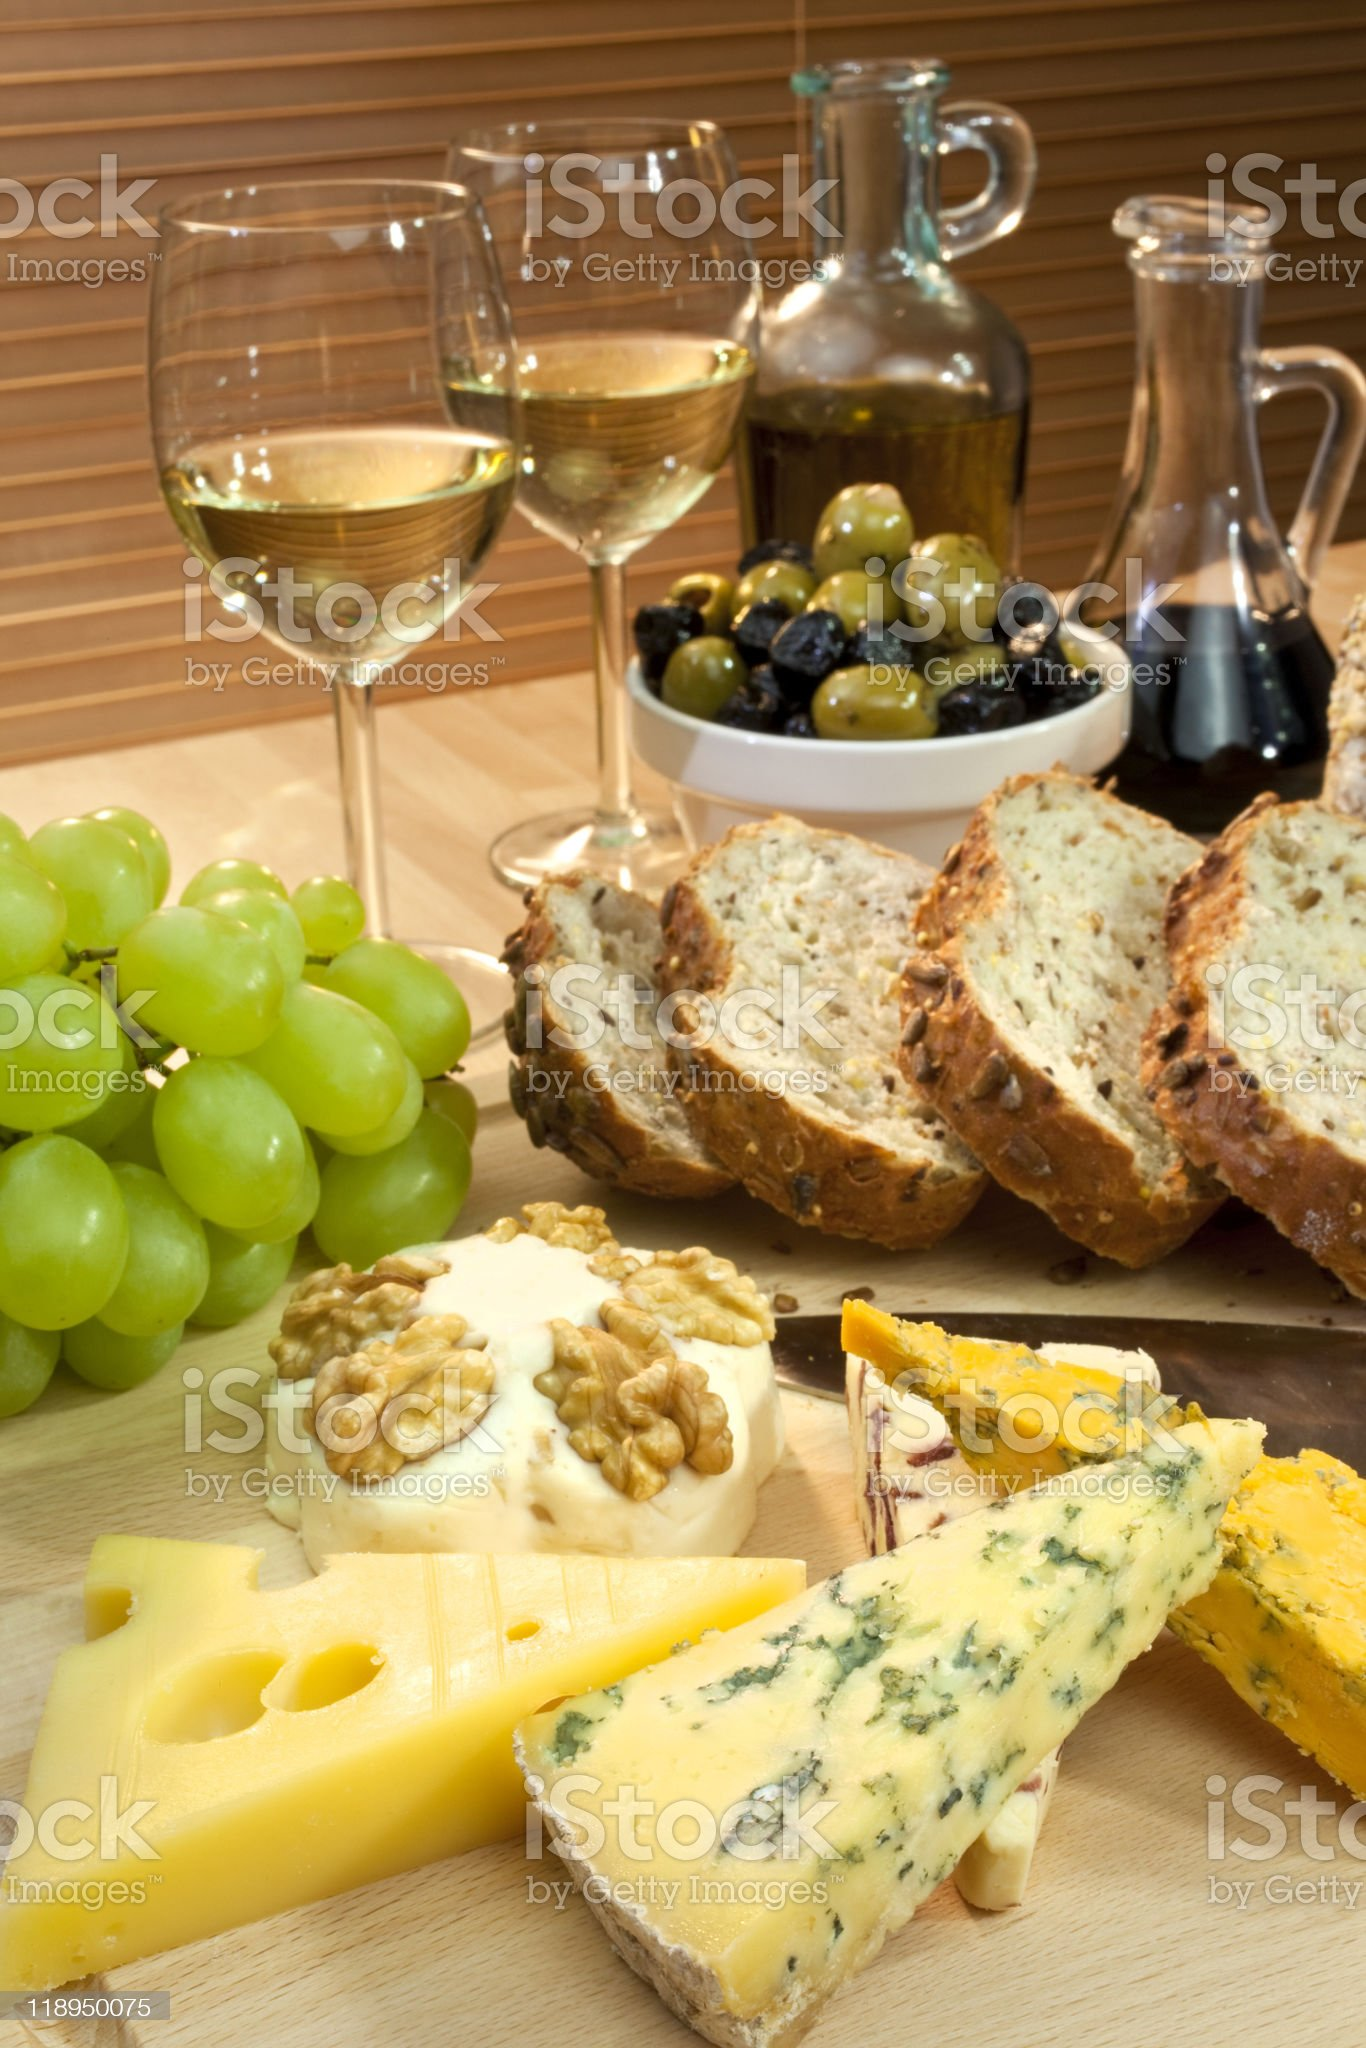 Mediterranean Diet of Cheese, Wine, Grapes, Olives, Bread Balsma royalty-free stock photo